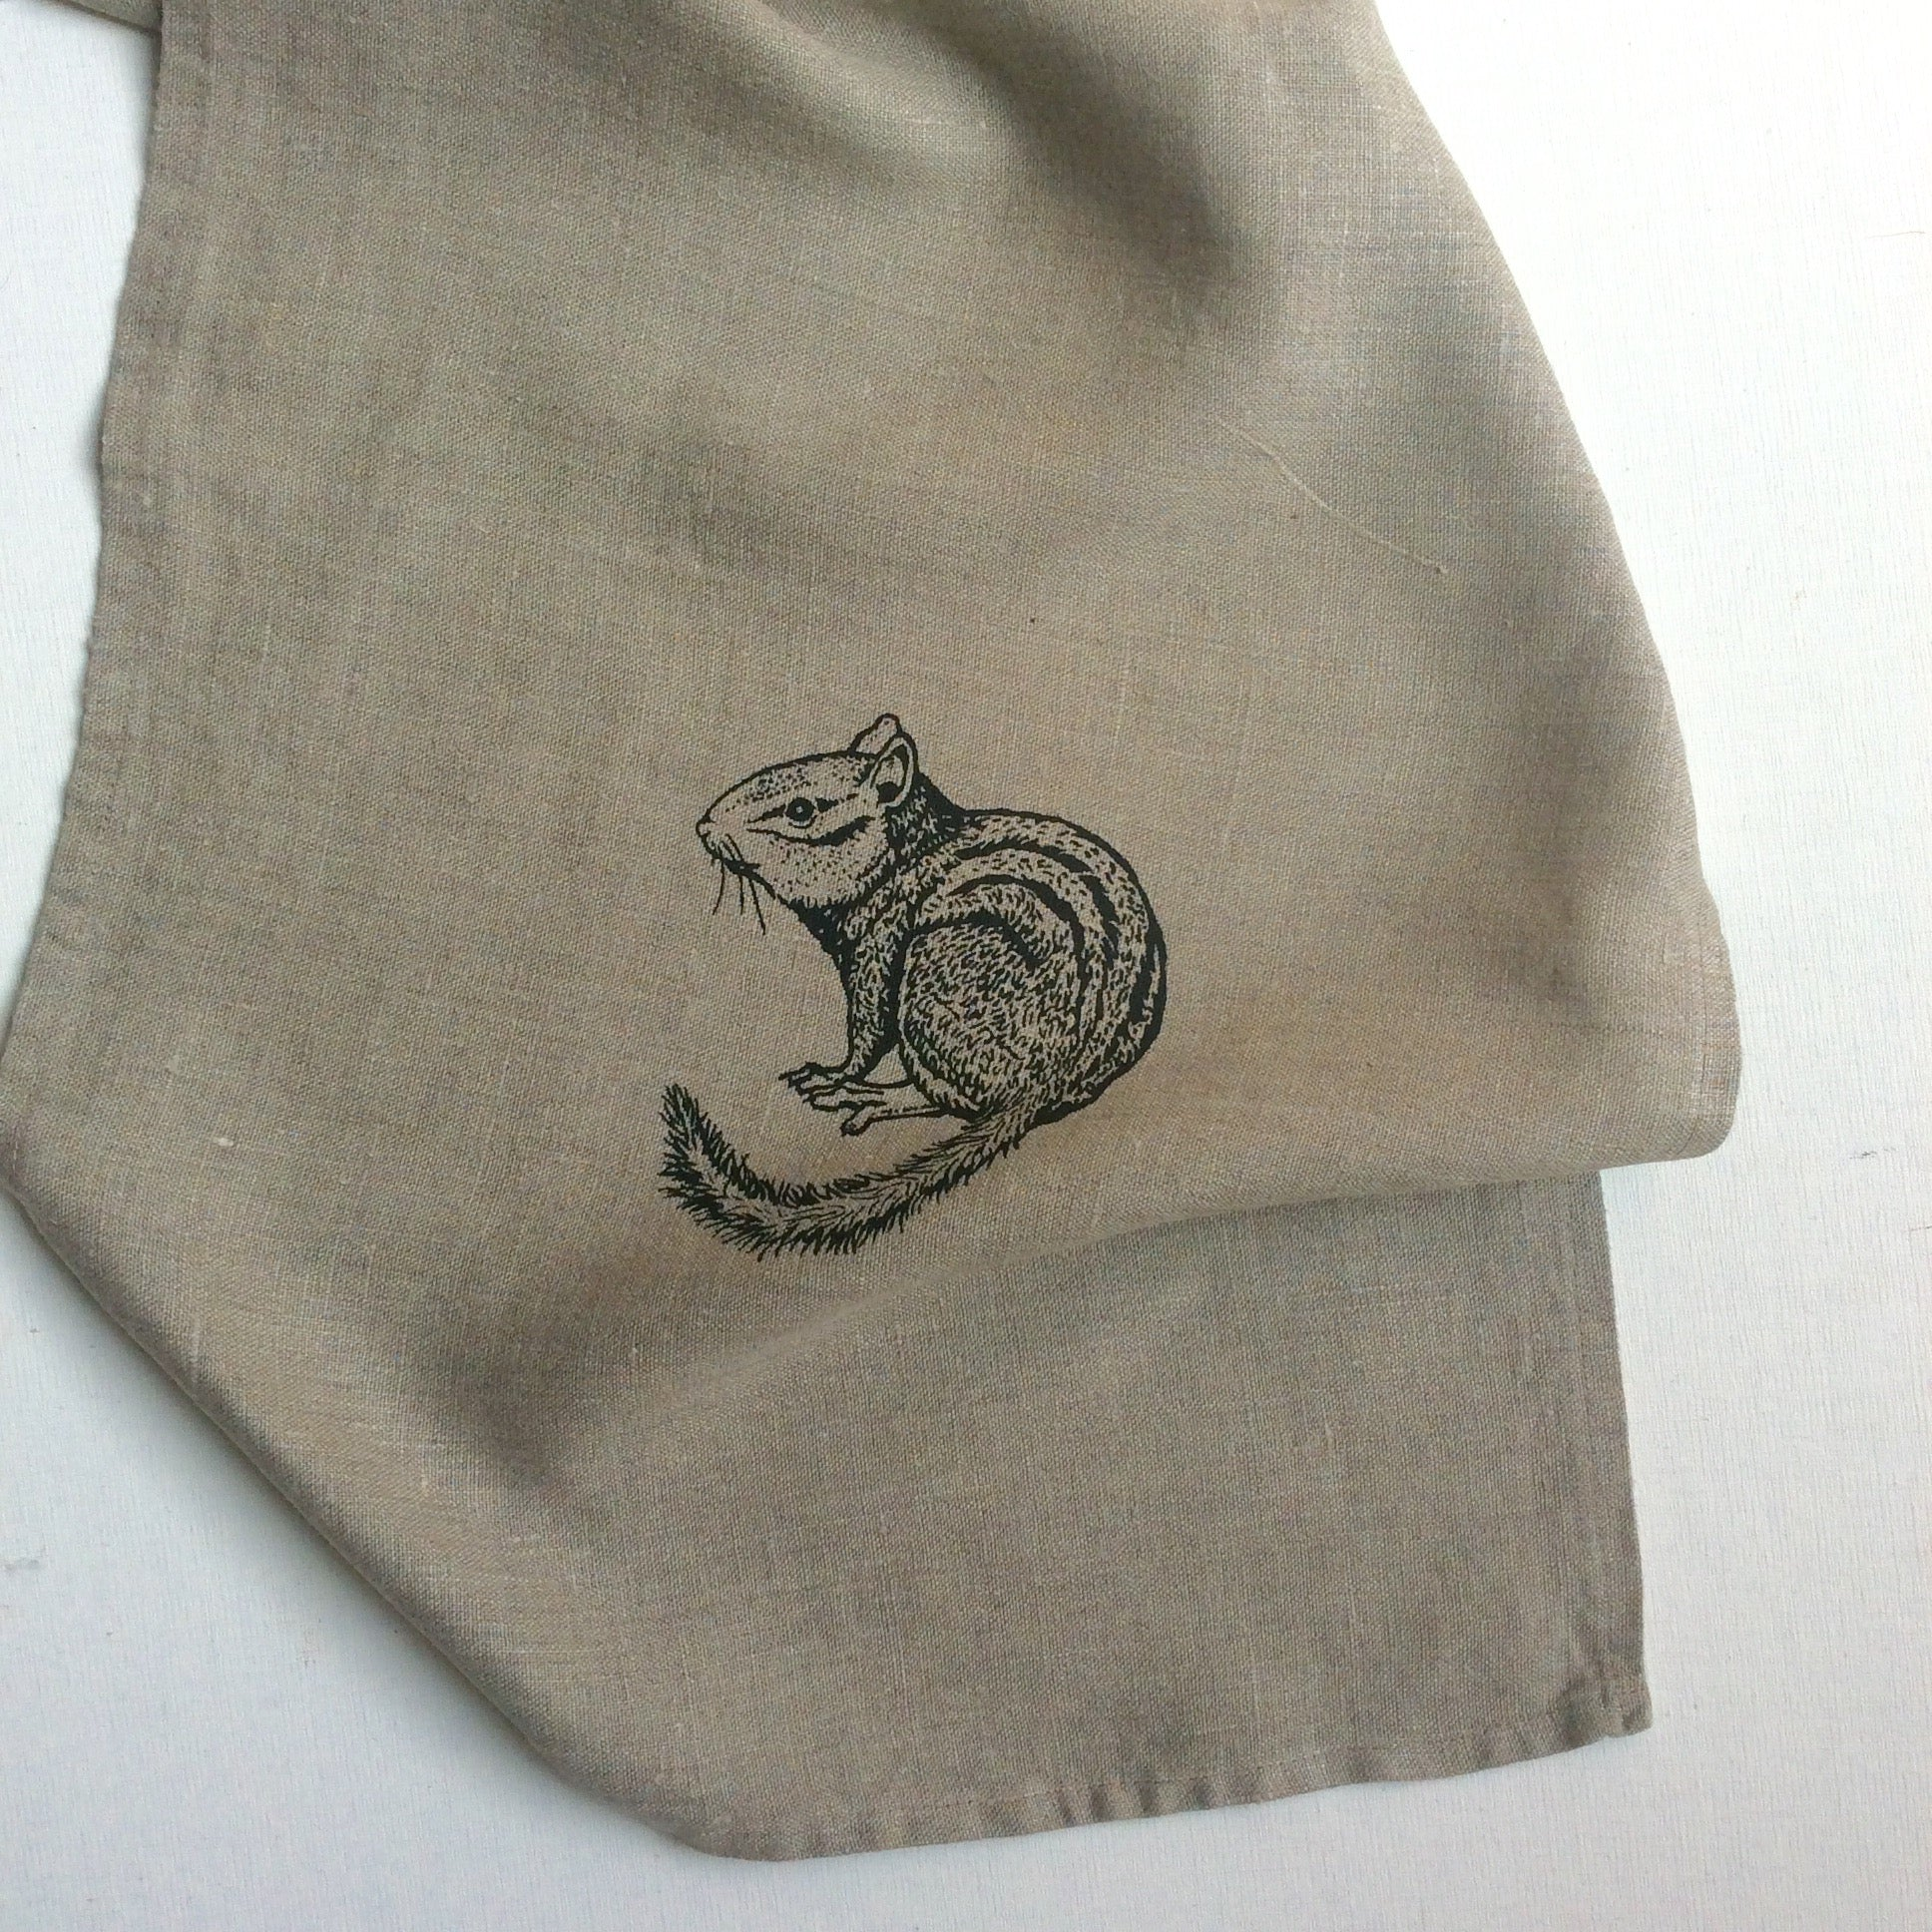 Wildlife Illustration Linen Tea Towel - Chipmunk